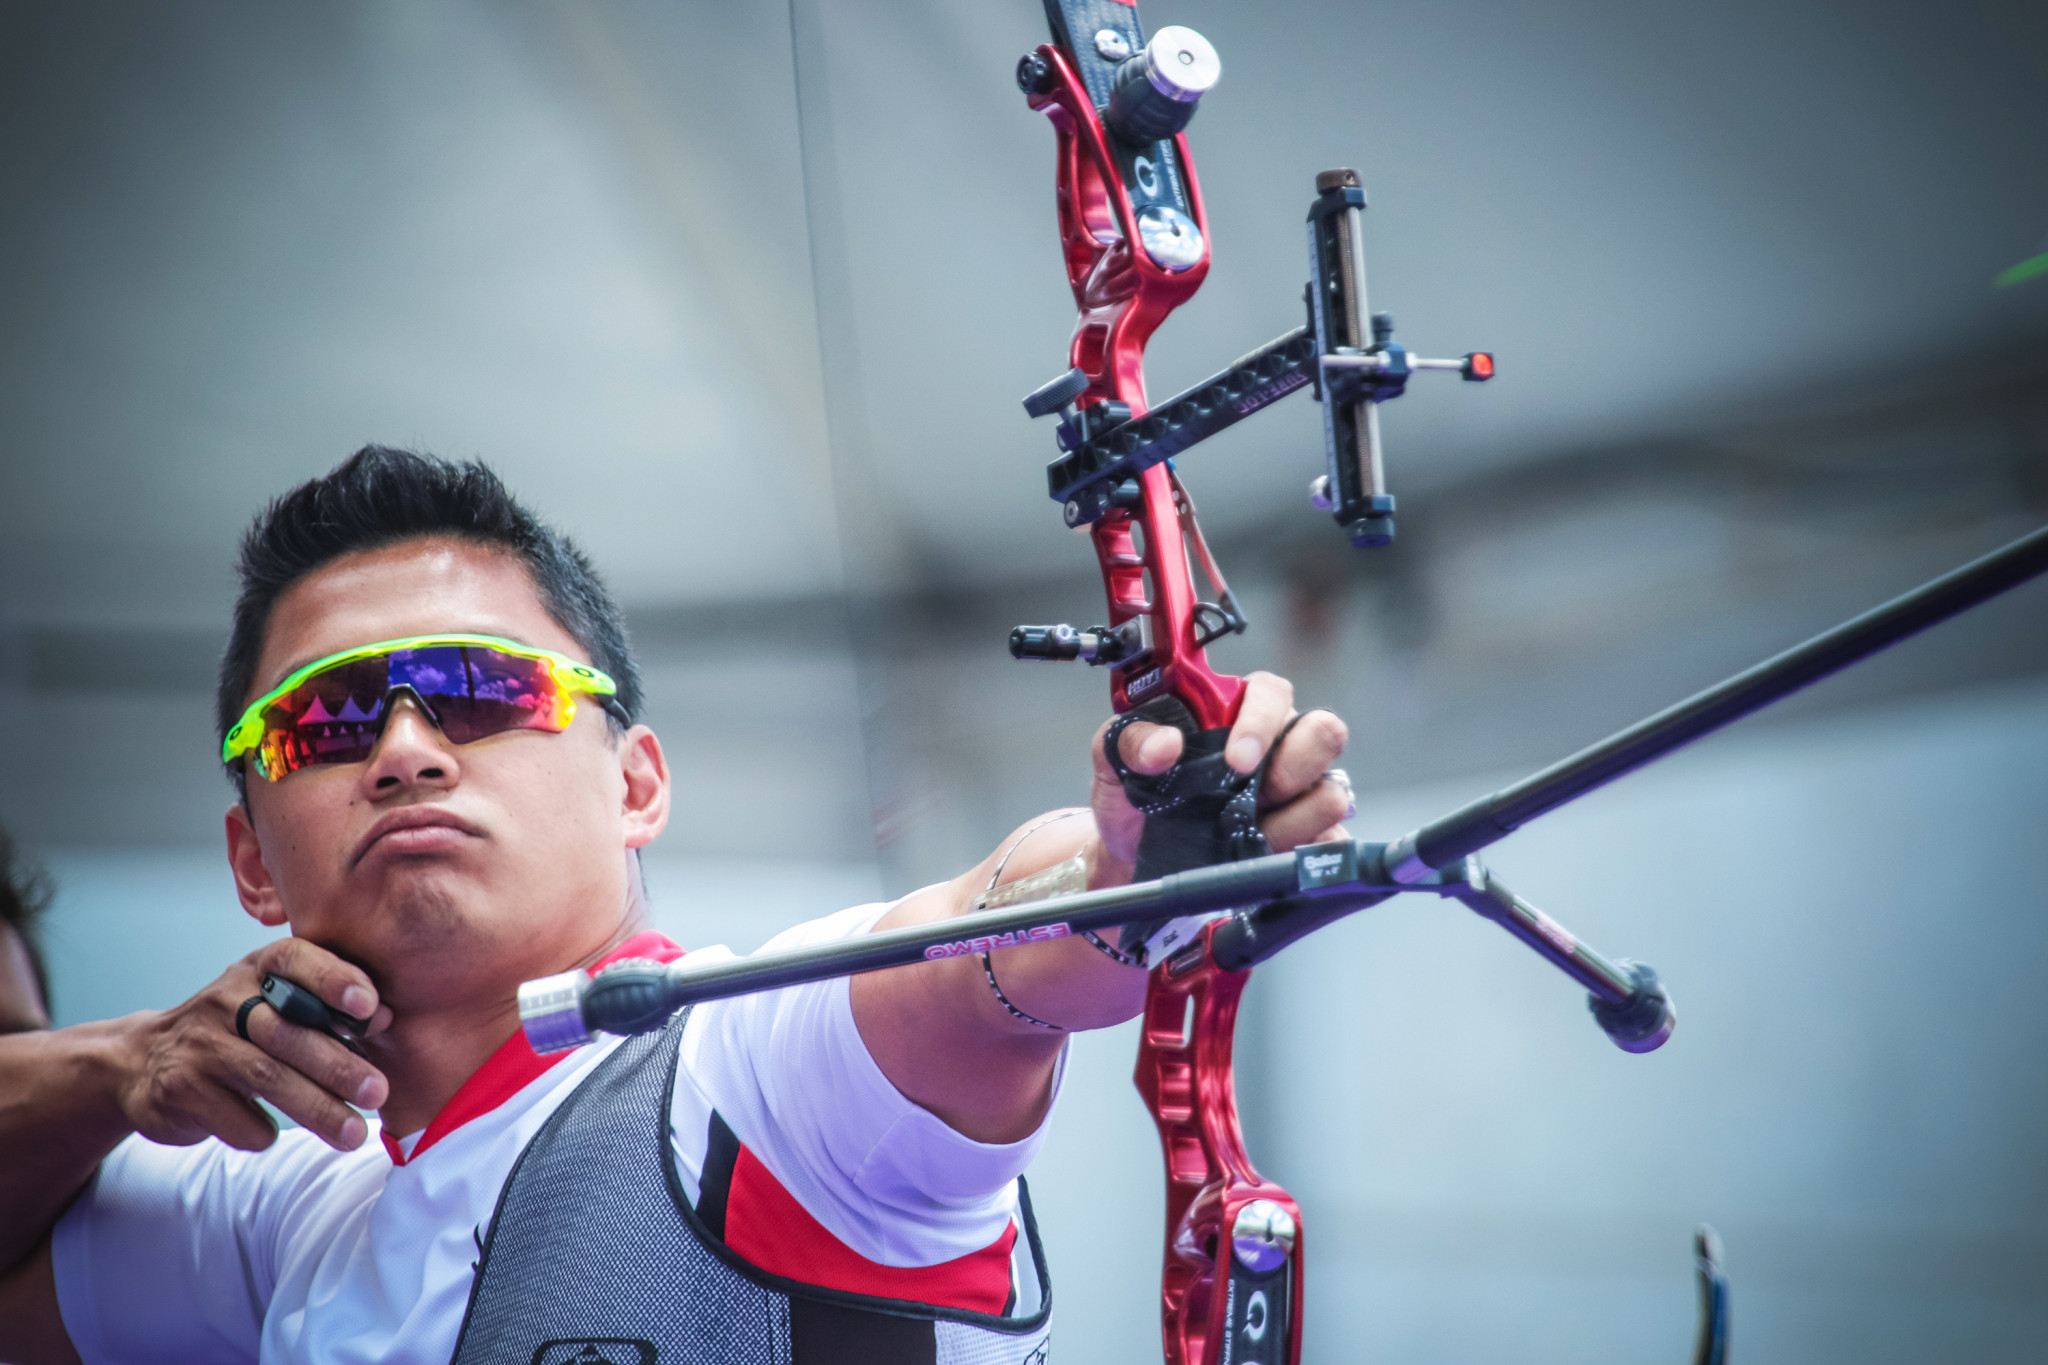 Canada's Crispin Duenas earned top seeding in the men's recurve event ©Getty Images